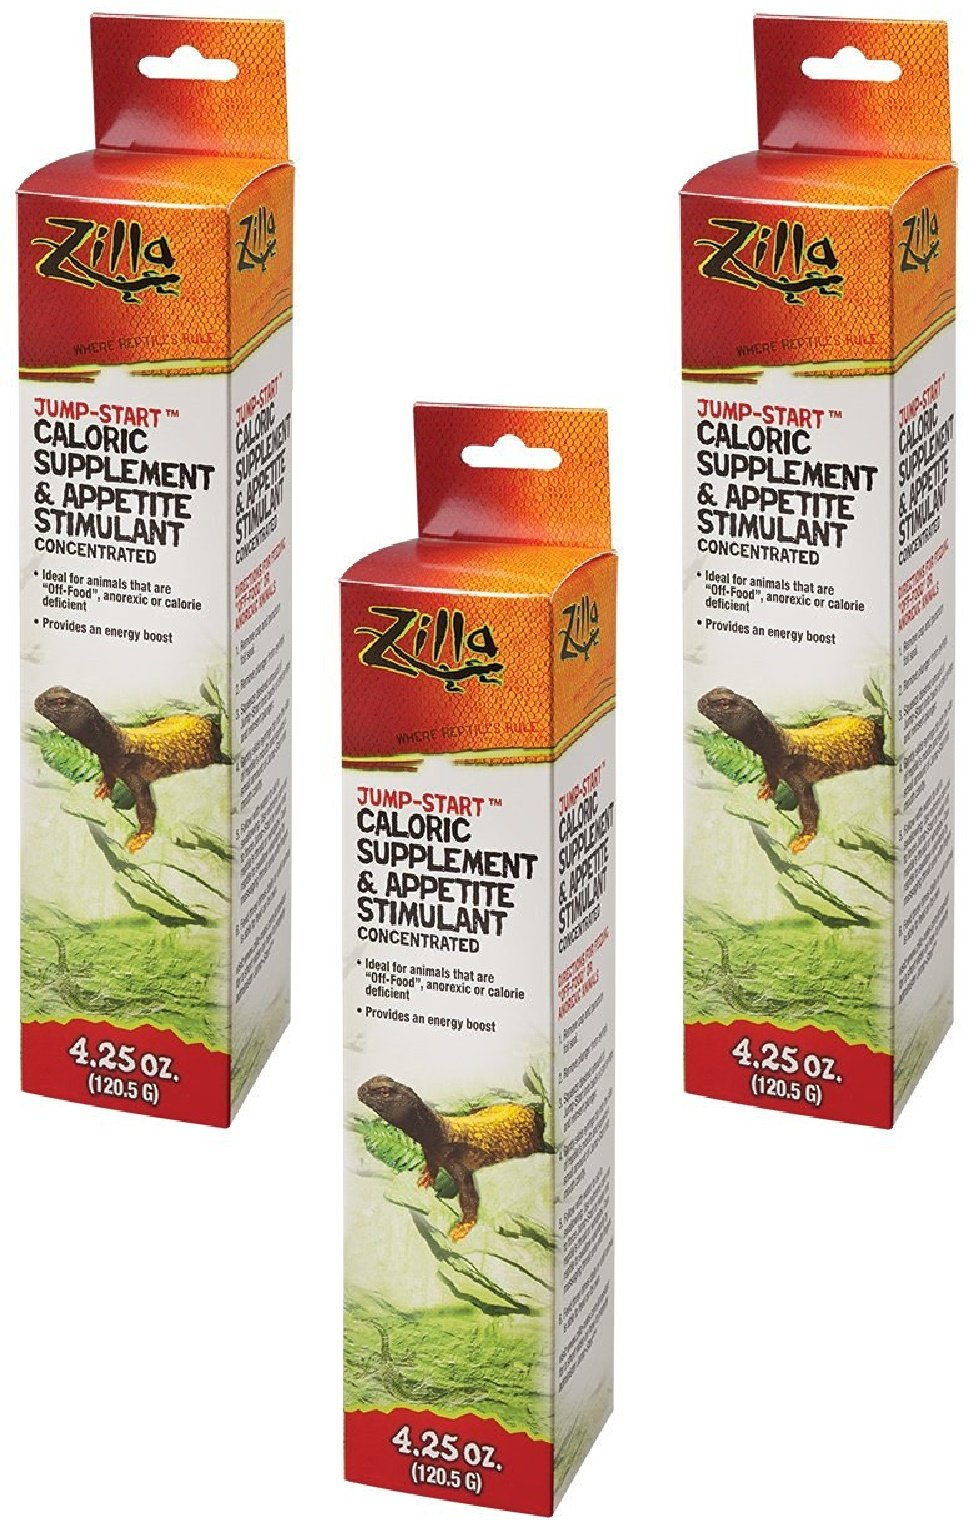 (3 Pack) Zilla Reptile Health Supplies Jump-Start Appetite Stimulant, 4.25 Ounce each